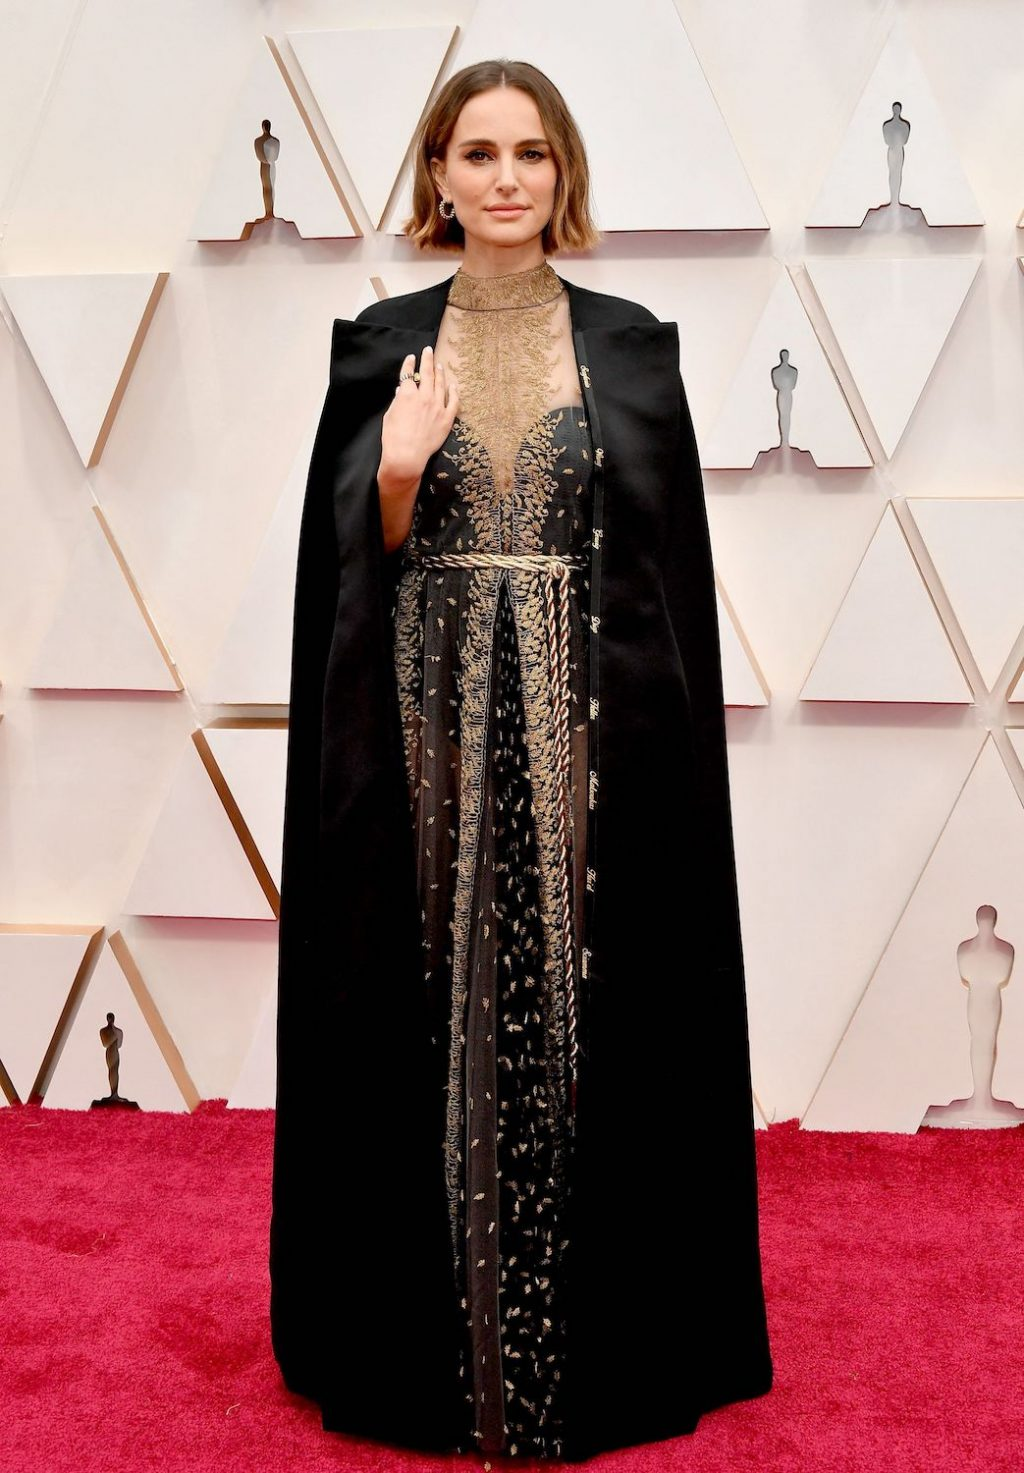 Natalie Portman's Oscars Look Had a Not-So-Secret Message